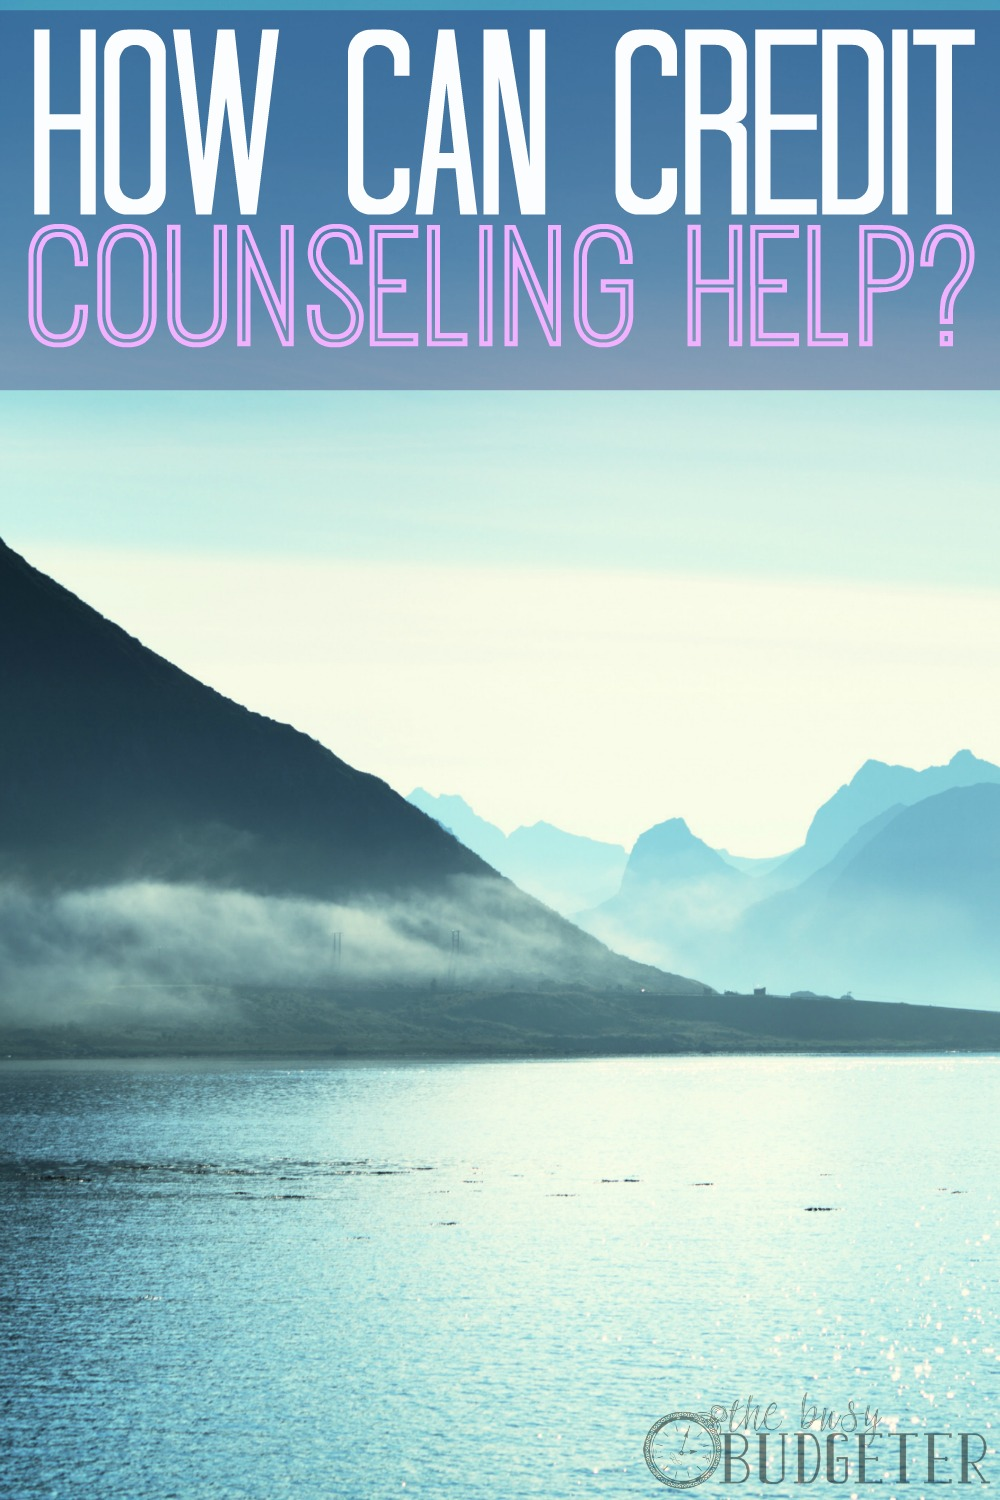 How Can Credit Counseling Help: So much great info in this post! I've been really hesitant to look into anything like this because I really didn't know enough. Now I feel so much more informed and able to figure out my debt!